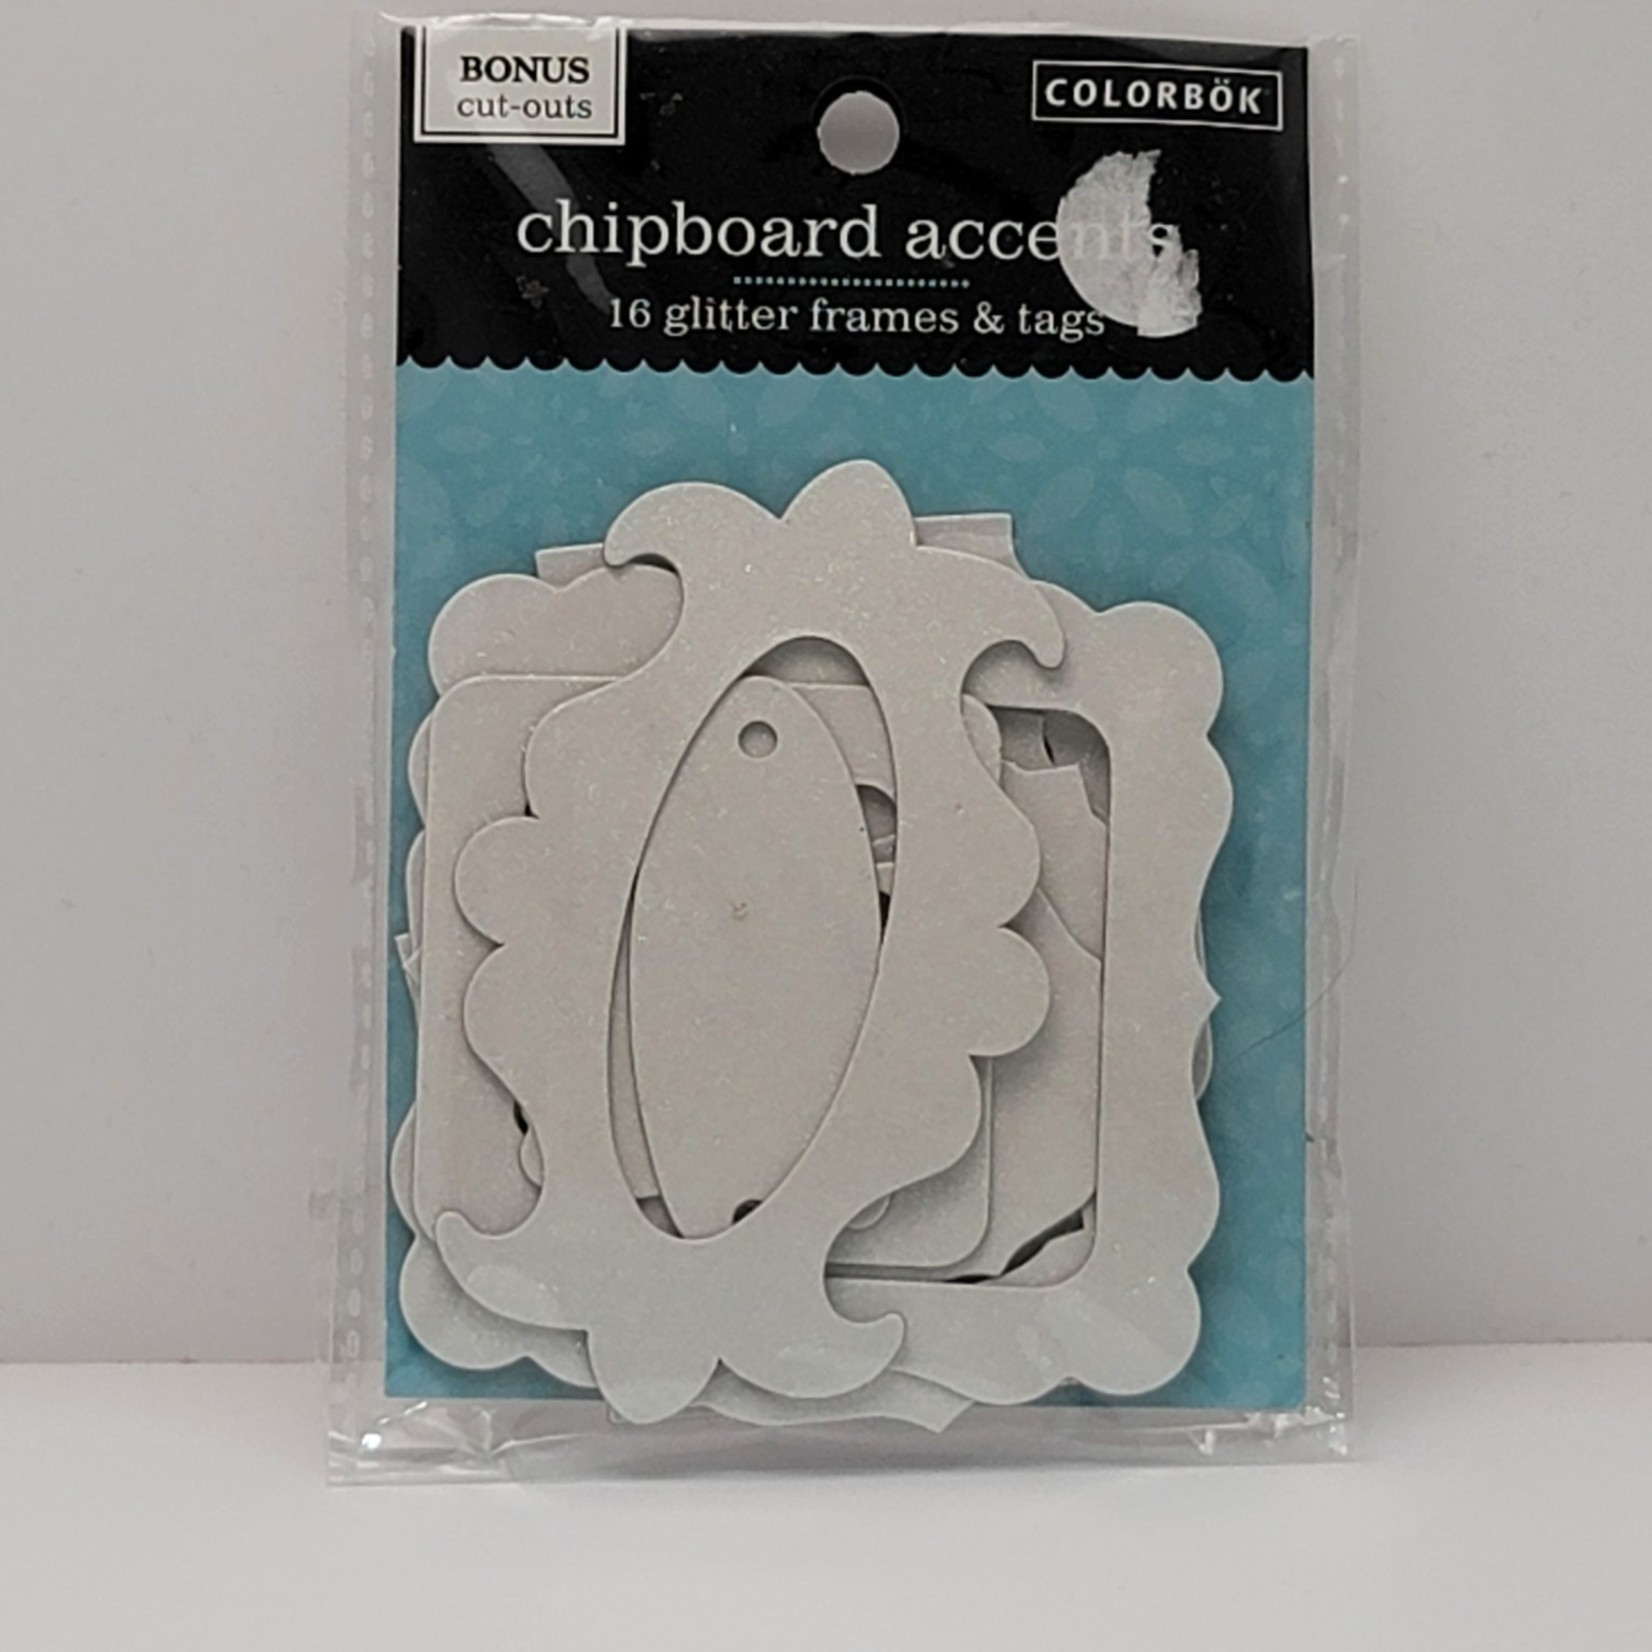 Chipboard Accents - Glitter Frames & Tags